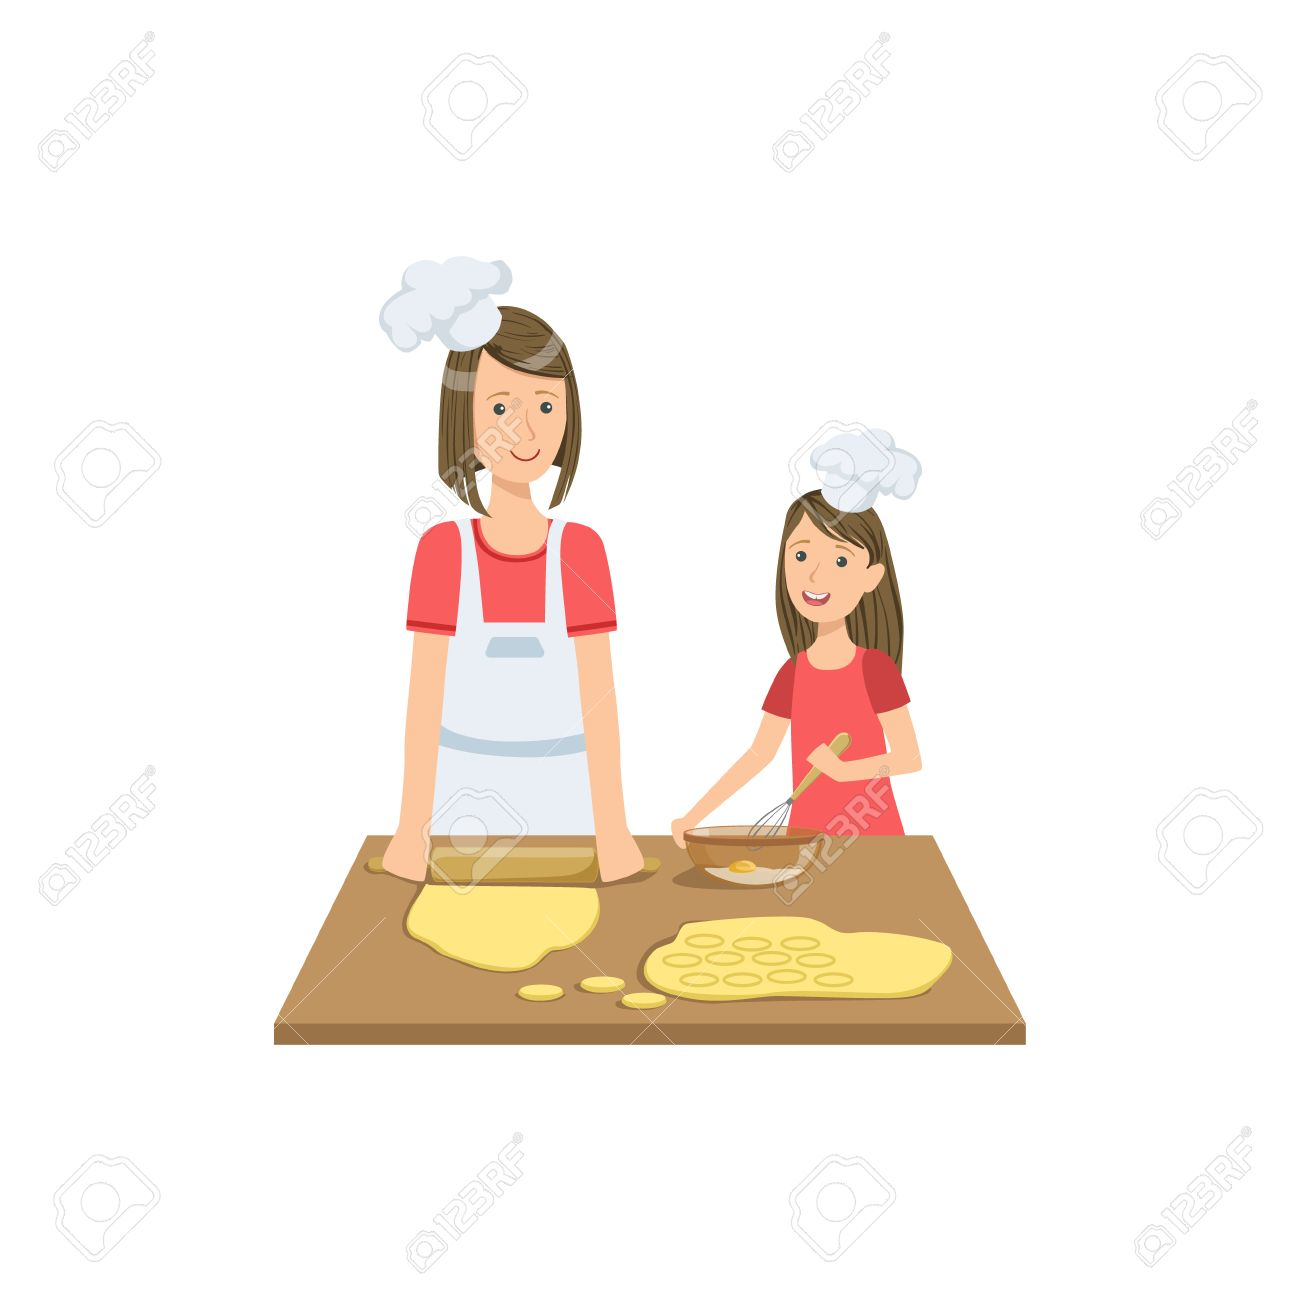 1300x1300 Mother And Child Making Cookies Together Illustration. Cute Simple